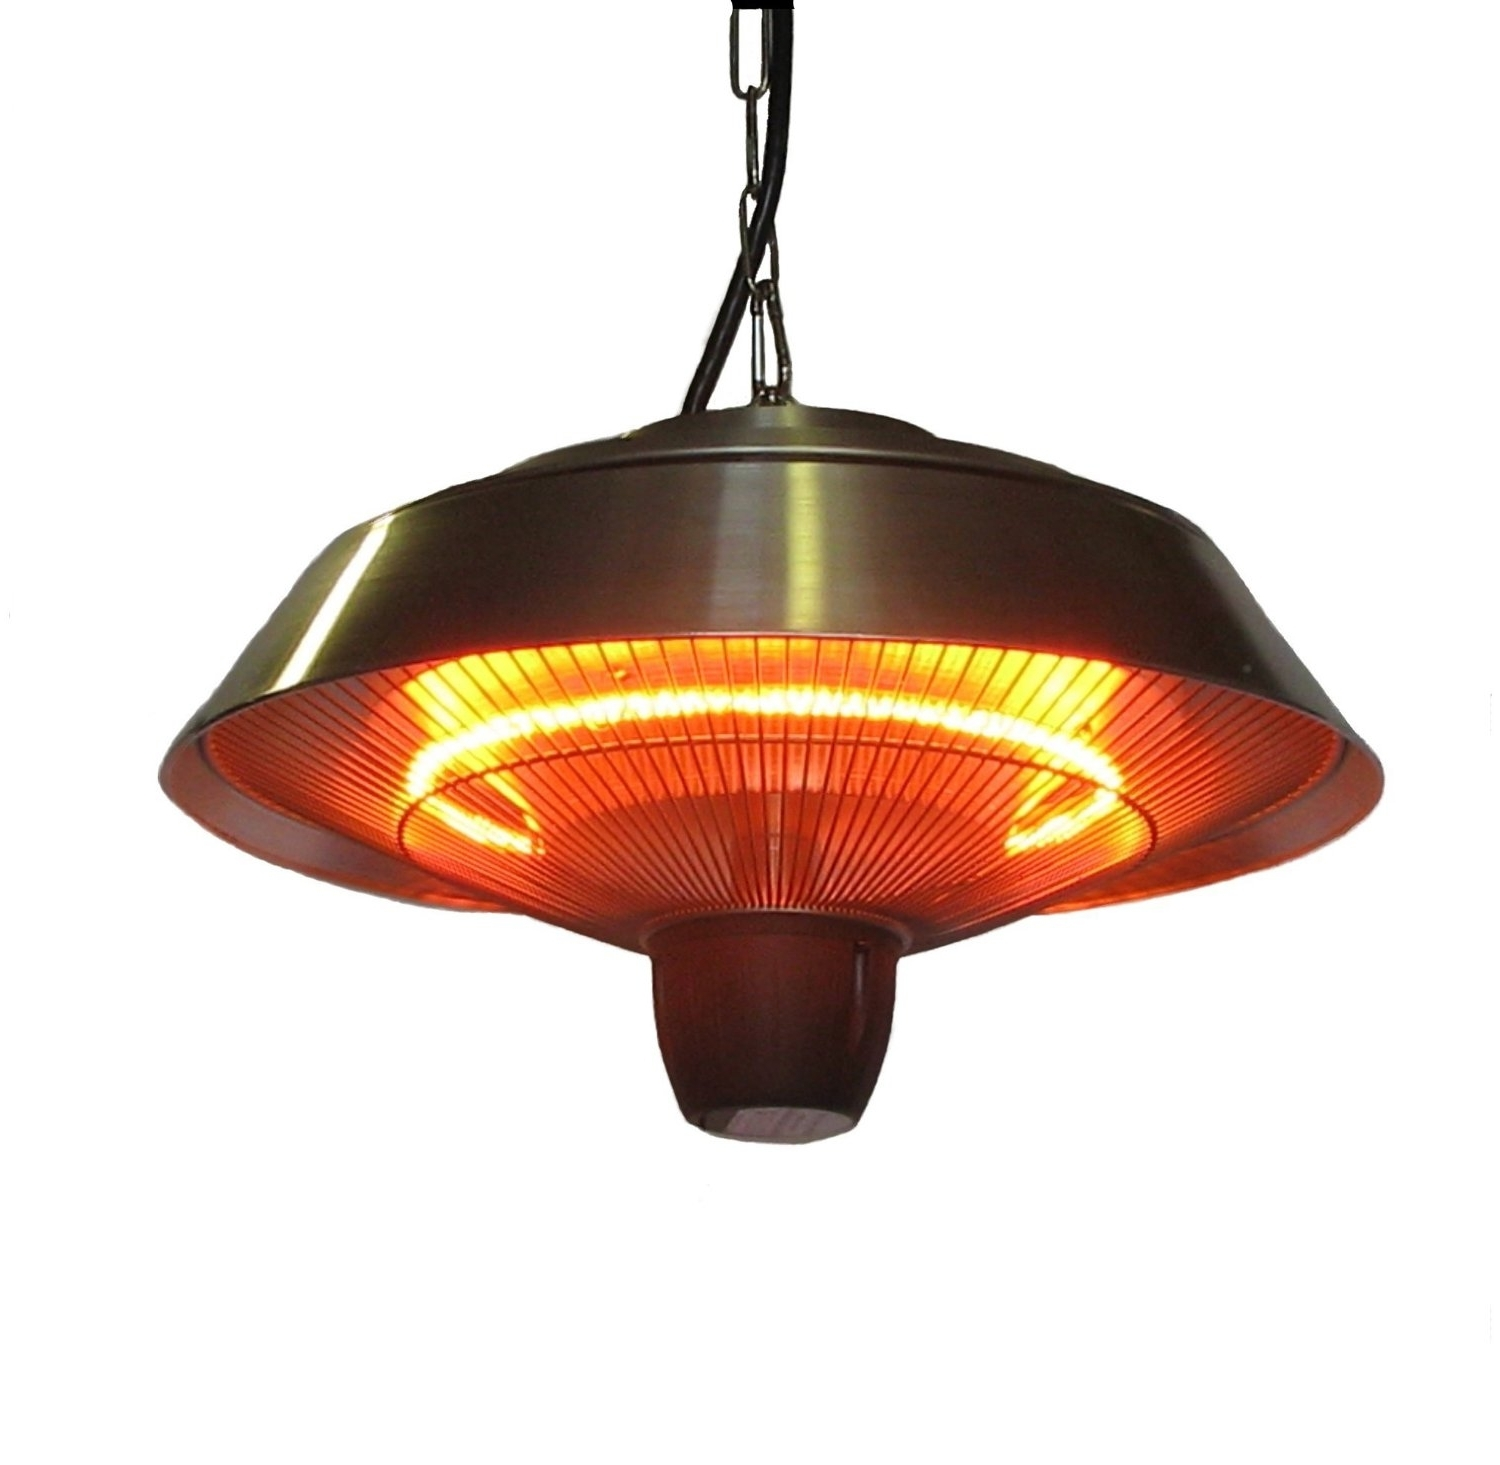 Quality Outdoor Ceiling Fans In Fashionable Interior: Hunter Ceiling Fan Light Kits Menards Ceiling, Menards (View 12 of 20)